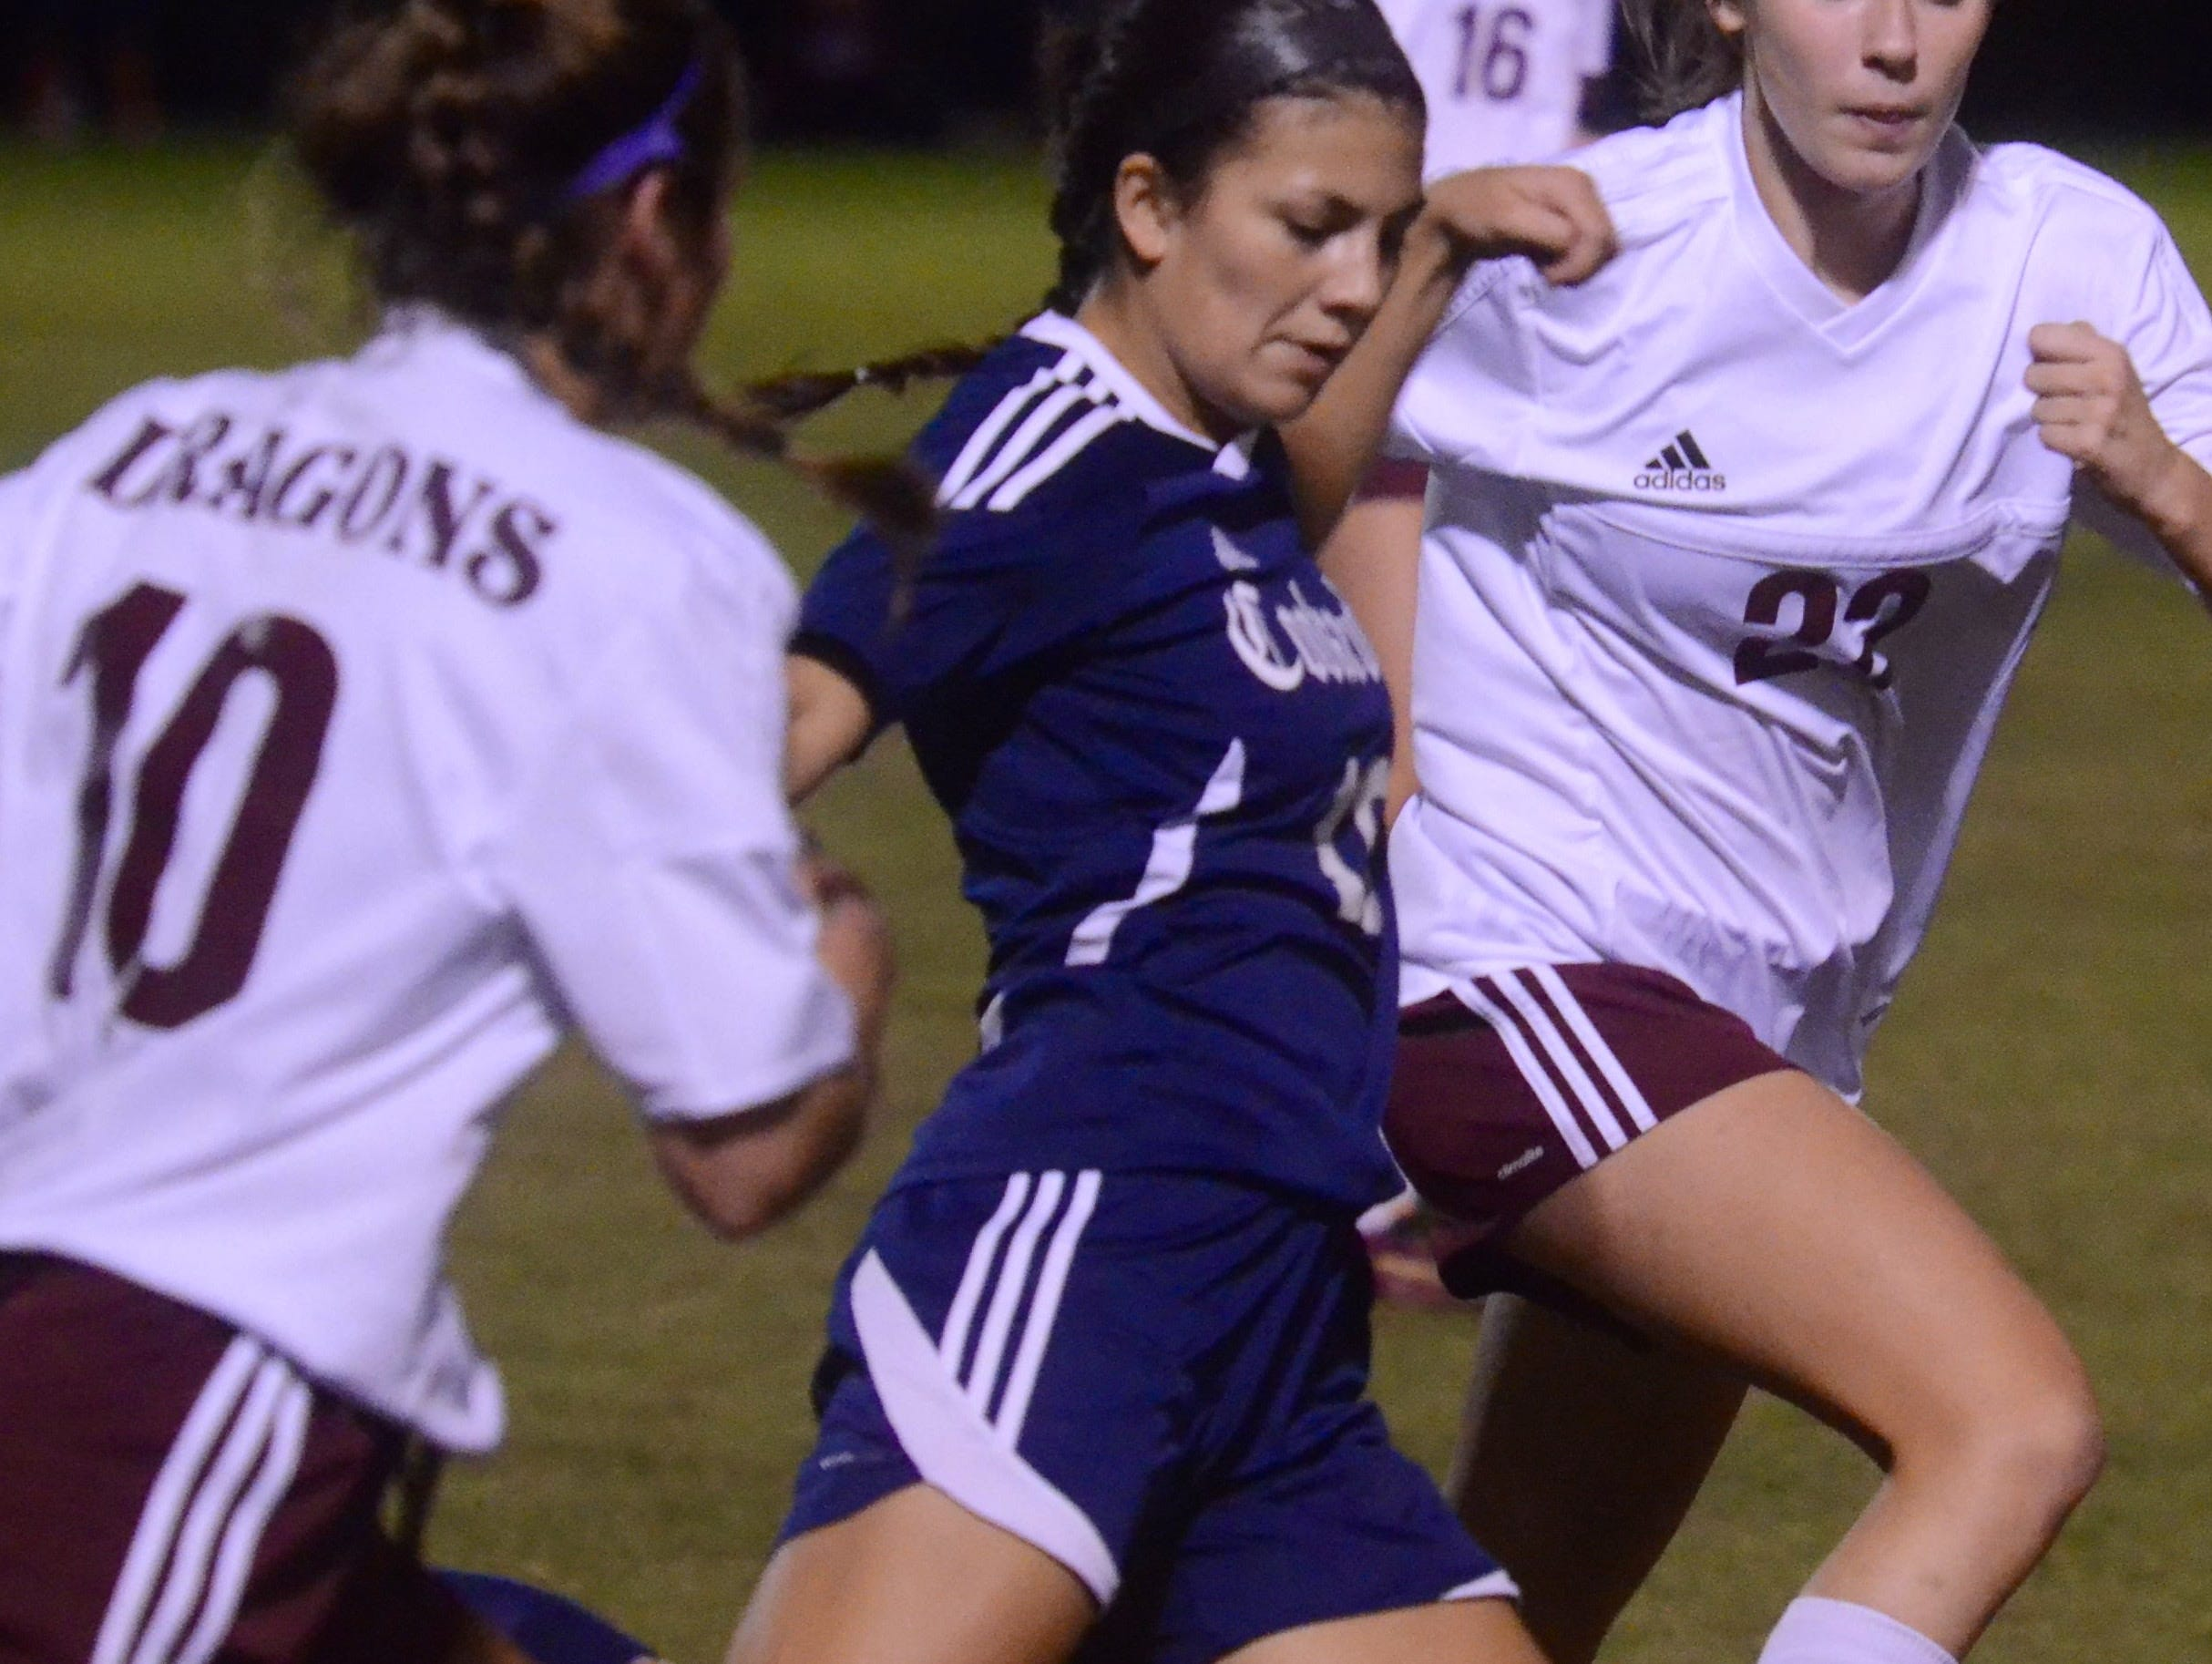 Cookeville senior midfielder Andrea Ramirez (middle) clears the ball upfield during Thursday's Class AAA quarterfinal match against Collierville.